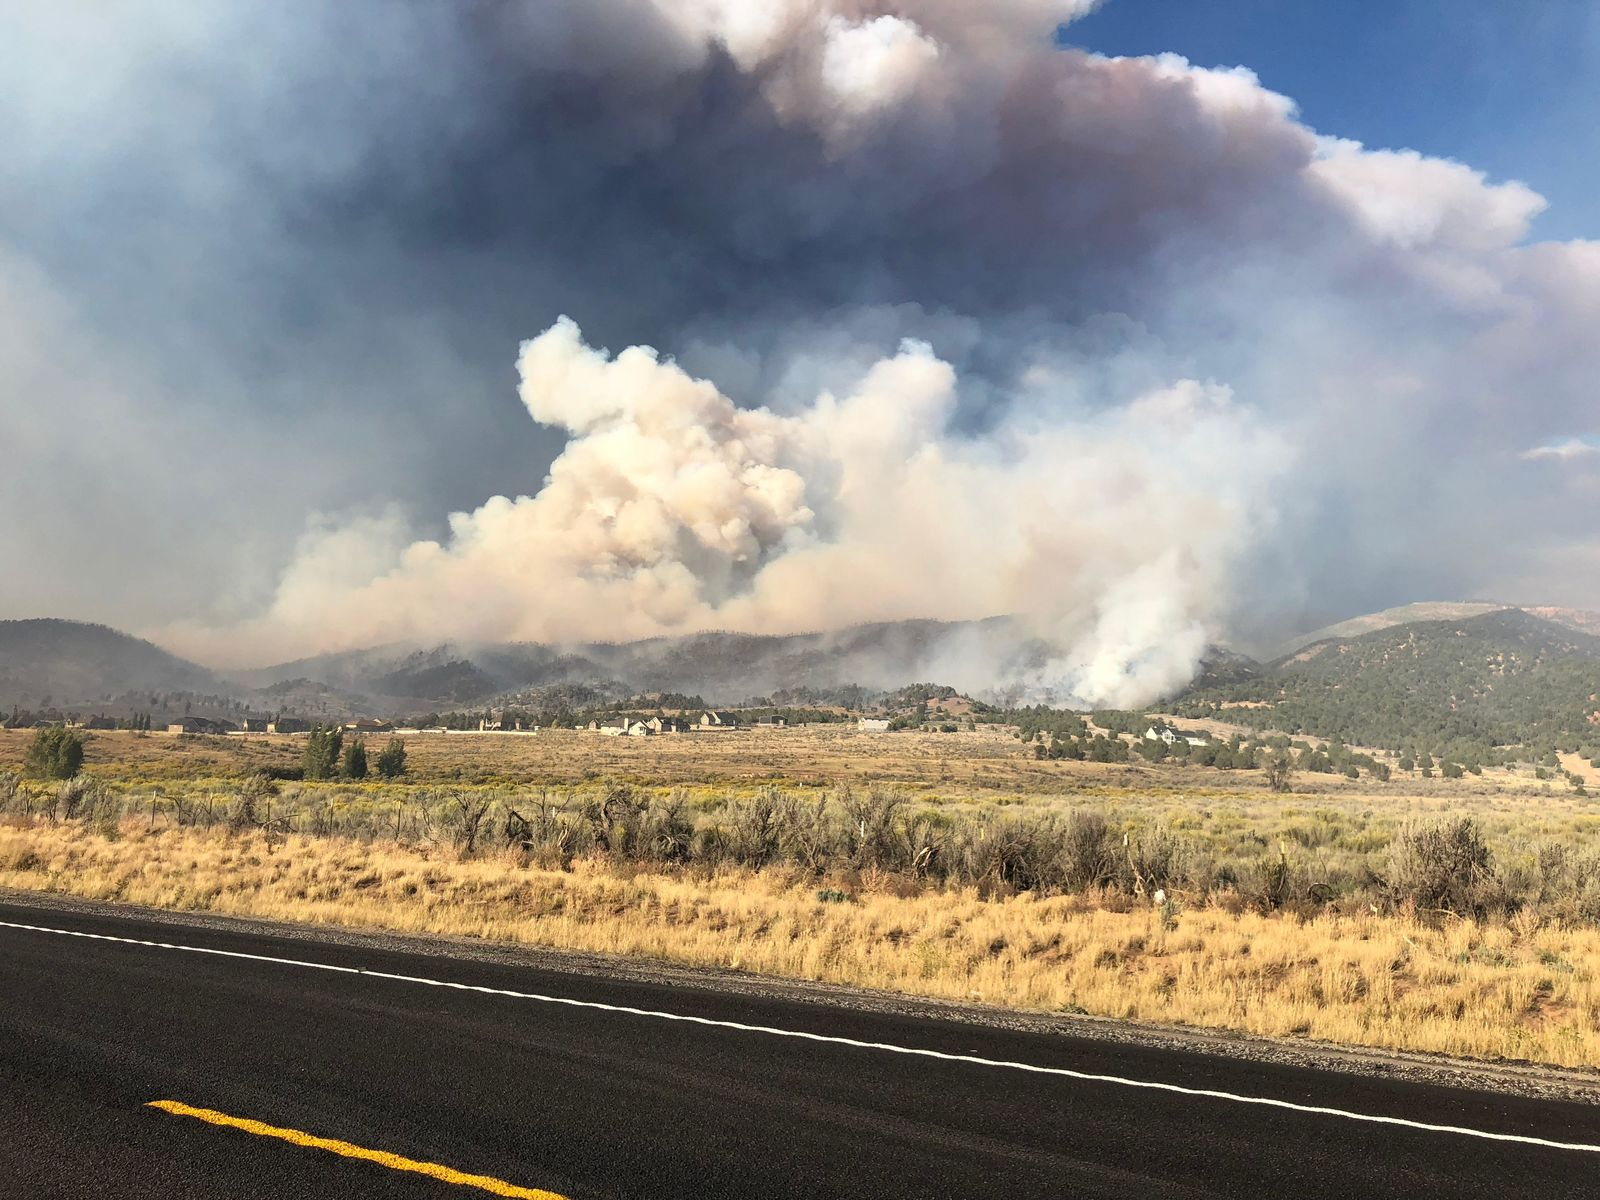 Utah has a destructive wildfire year in 2018 and hopes to improve in 2019. (Photo: RaeAnn Christensen / KUTV)